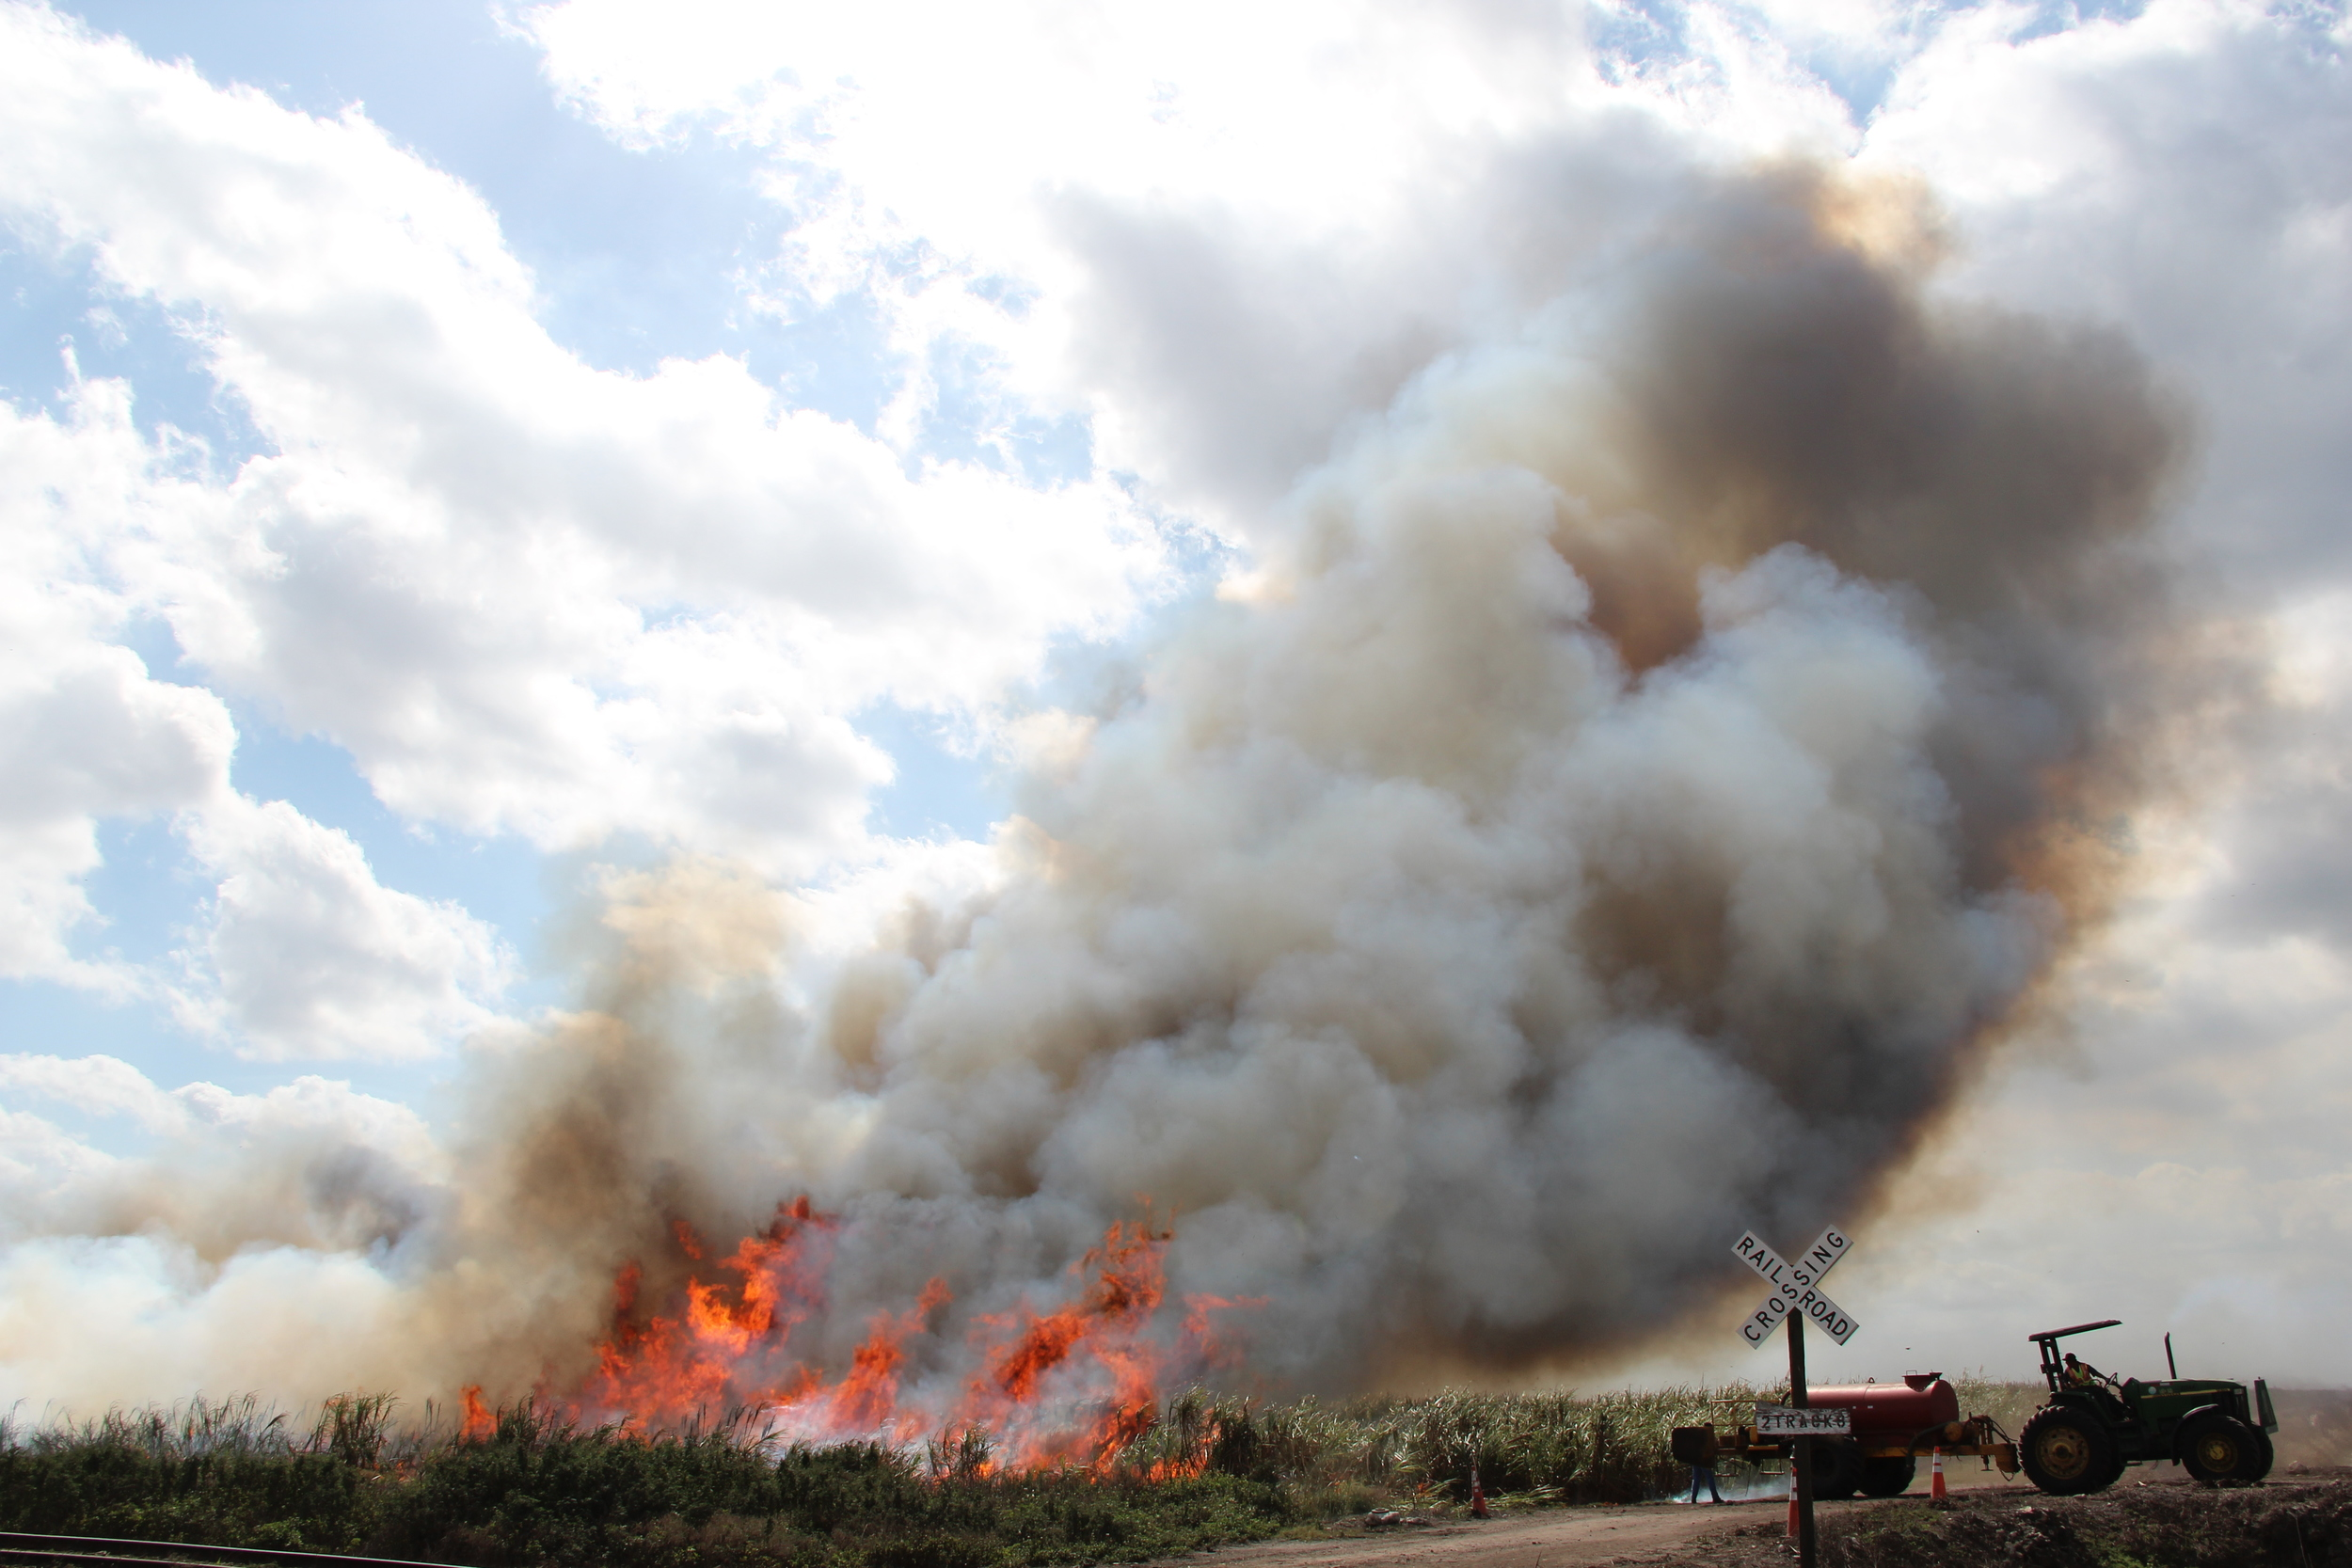 Controlled burn of sugar cane fields